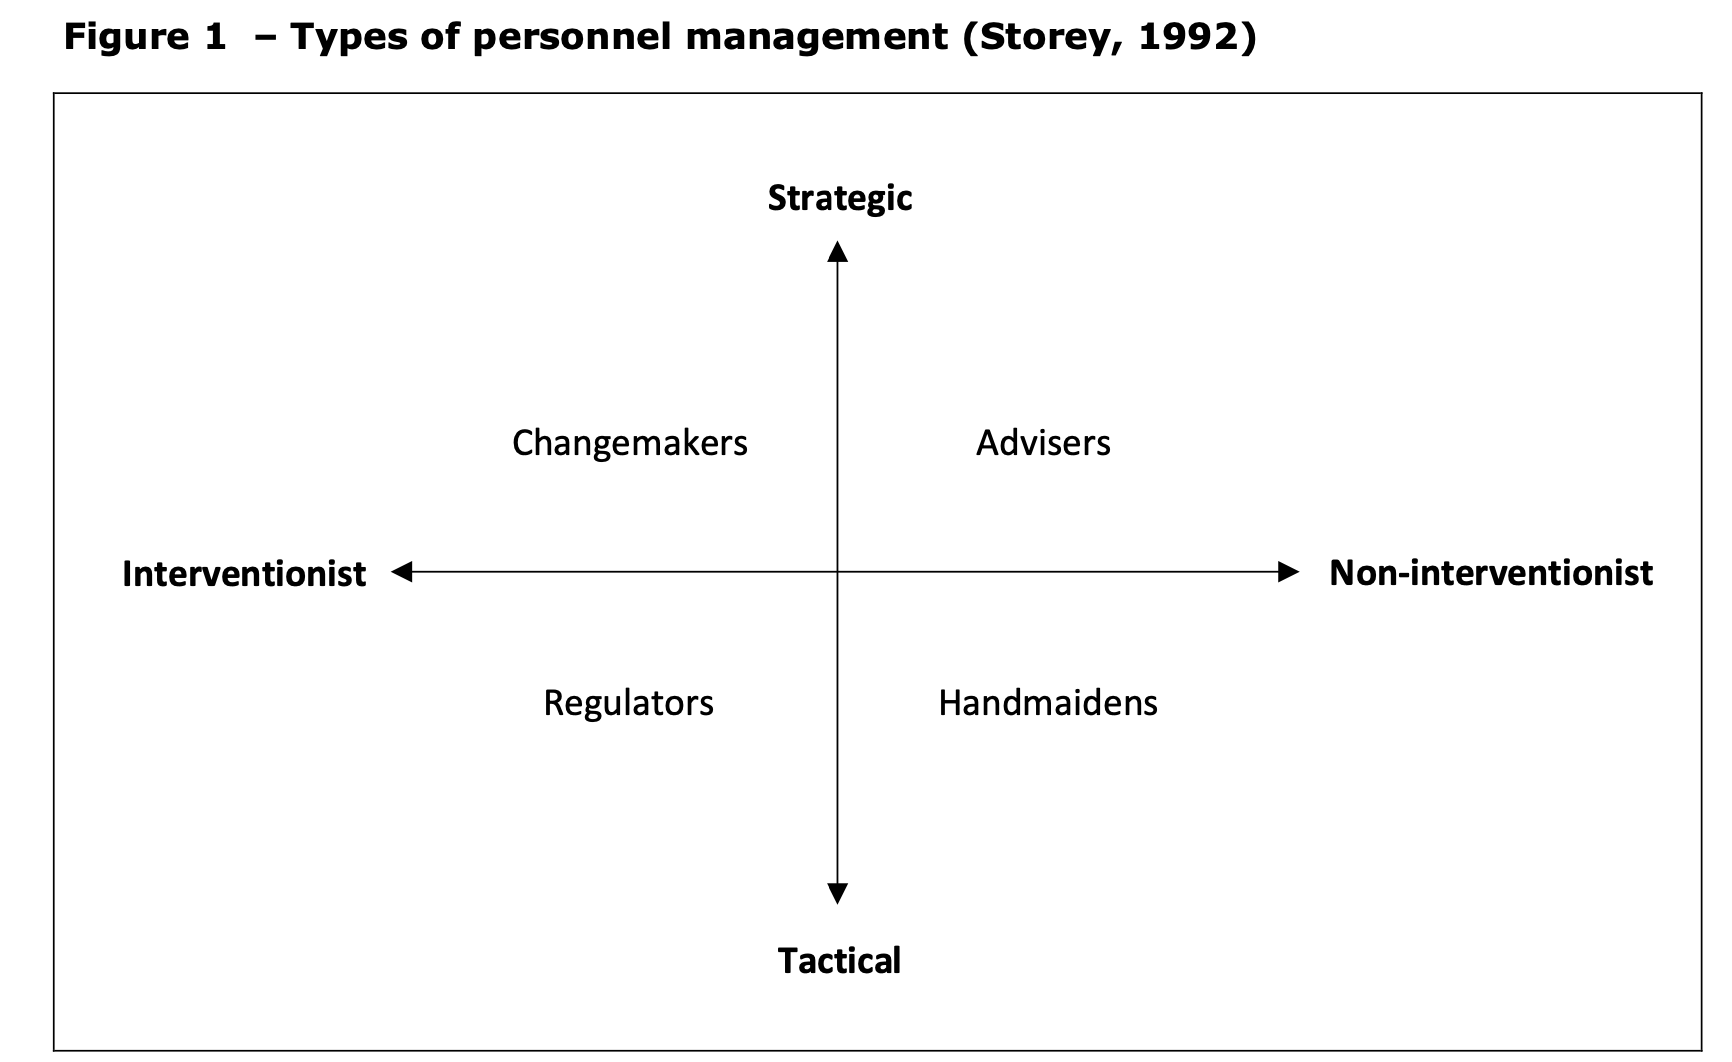 Types of personnel management diagram